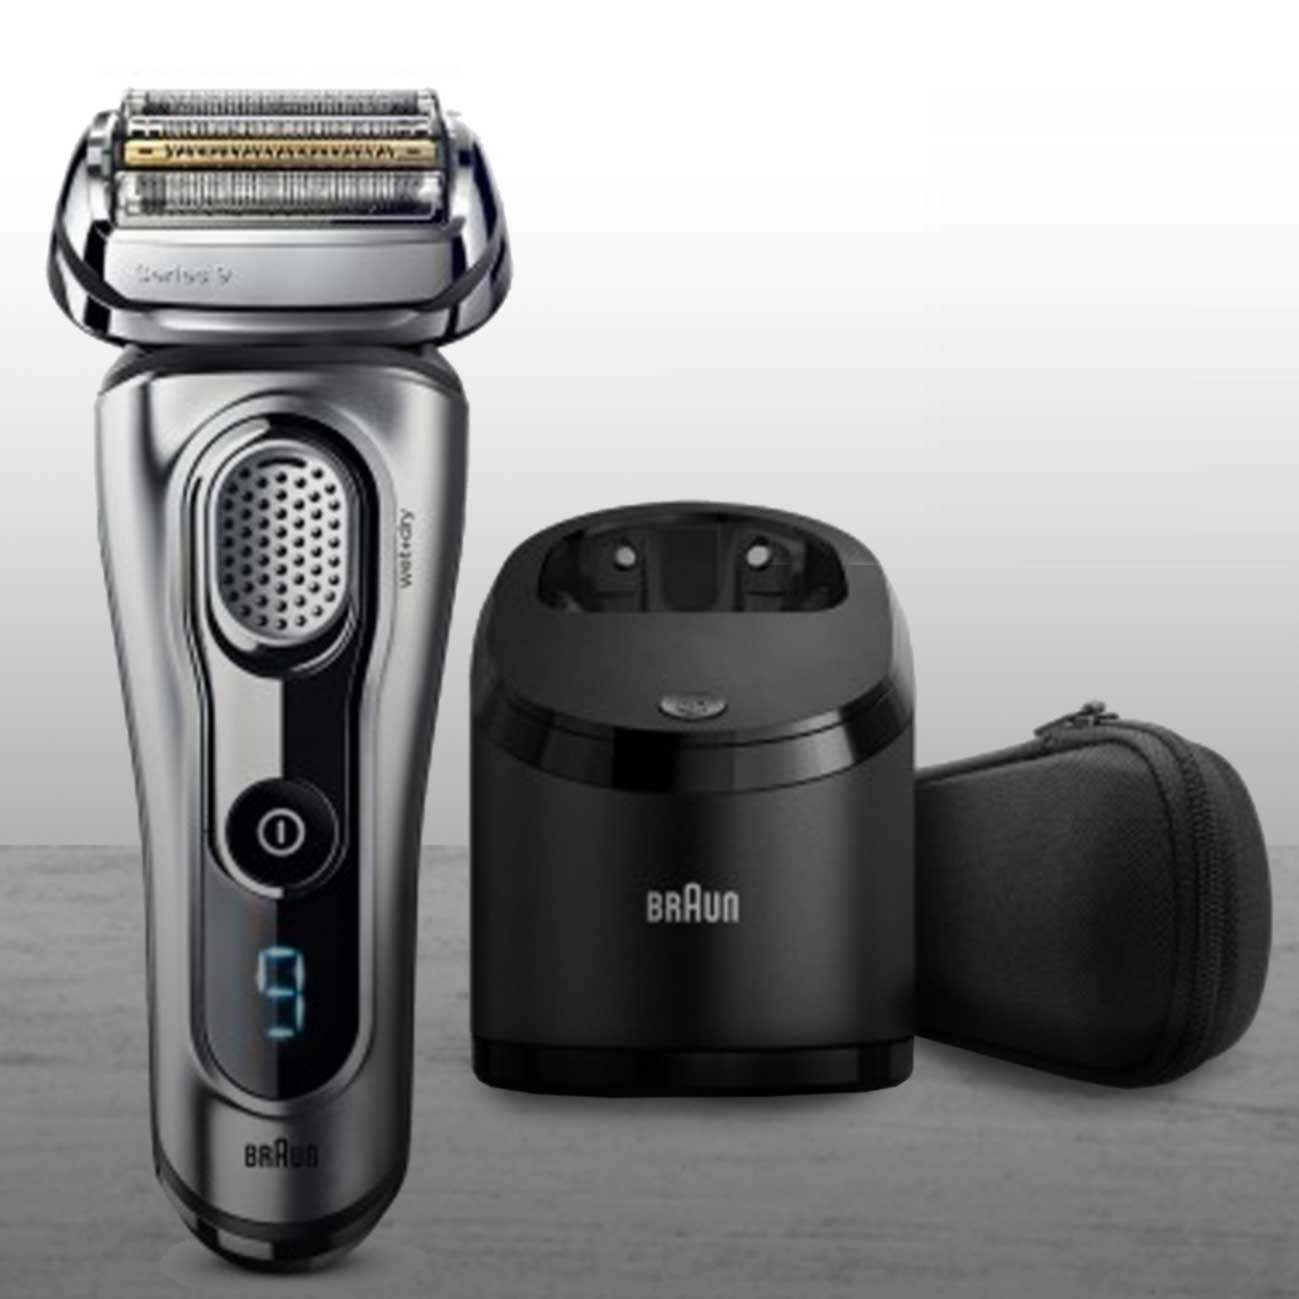 Self-cleaning vs manual cleaning electric shavers